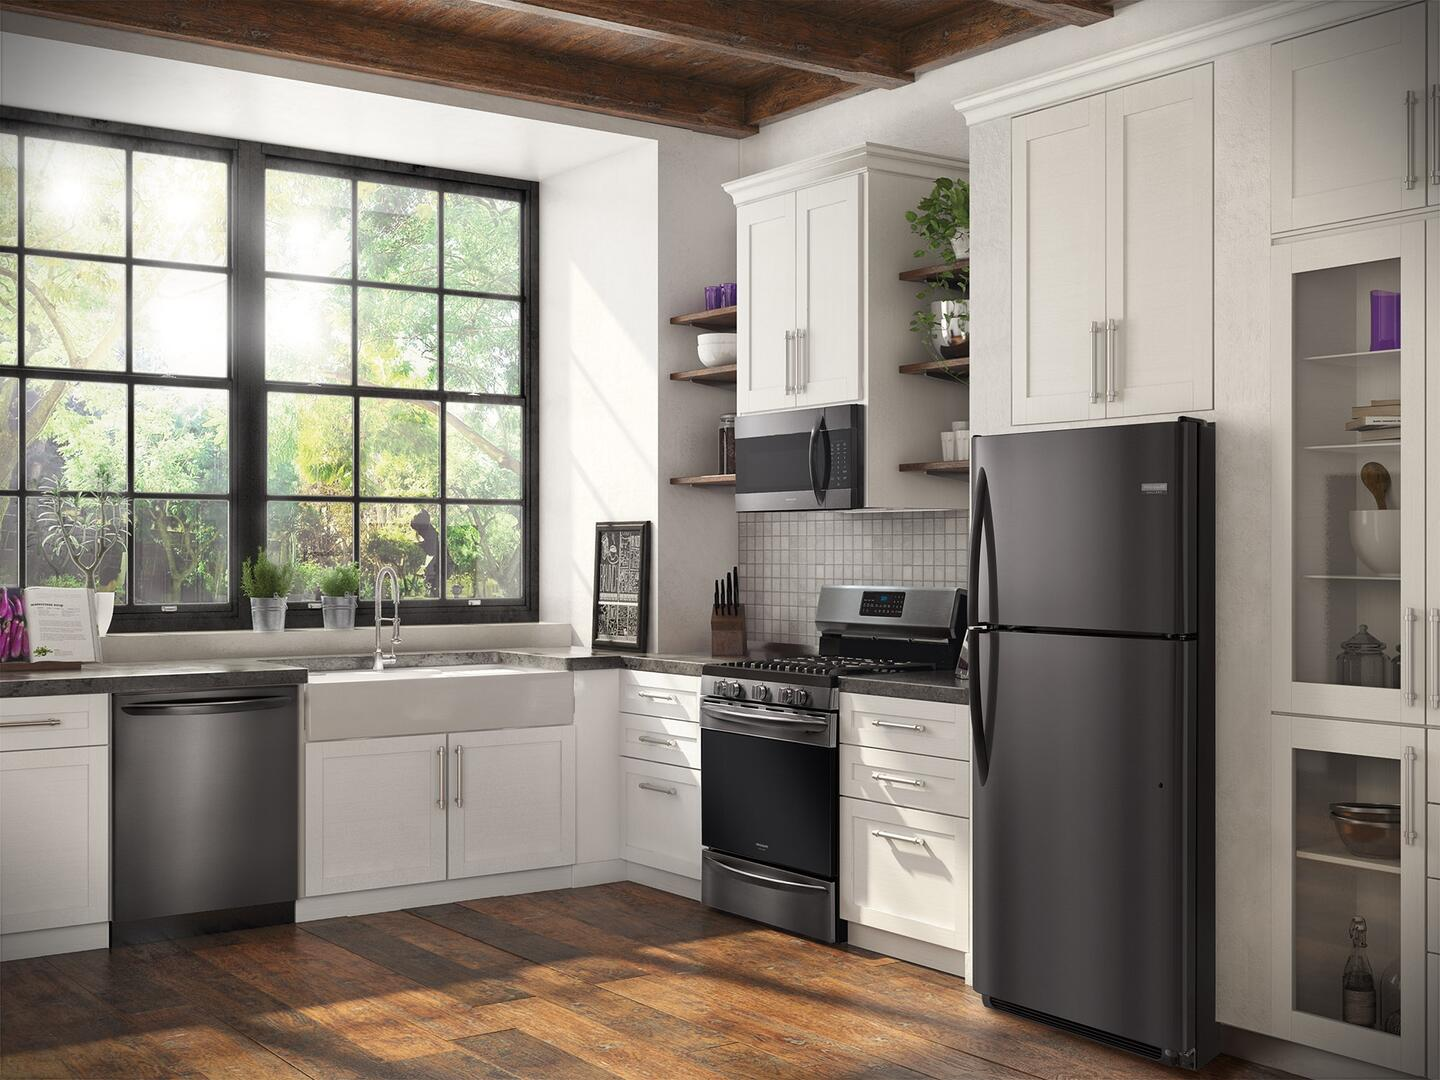 Image result for Frigidaire Gallery lifestyle